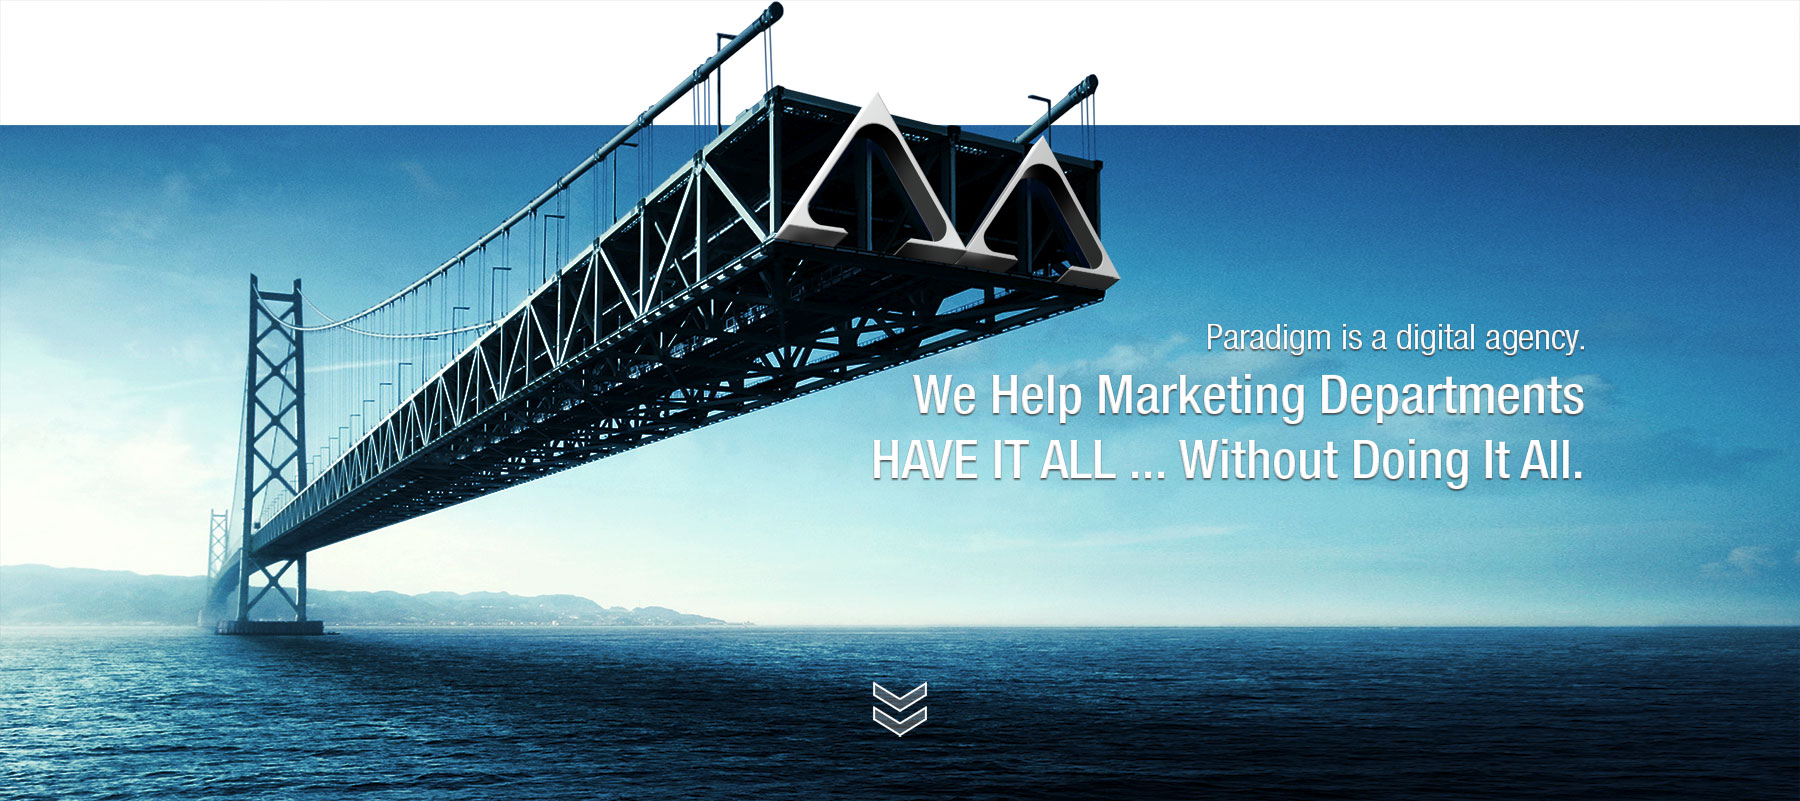 We help marketing departments have it all ... without doing it all.